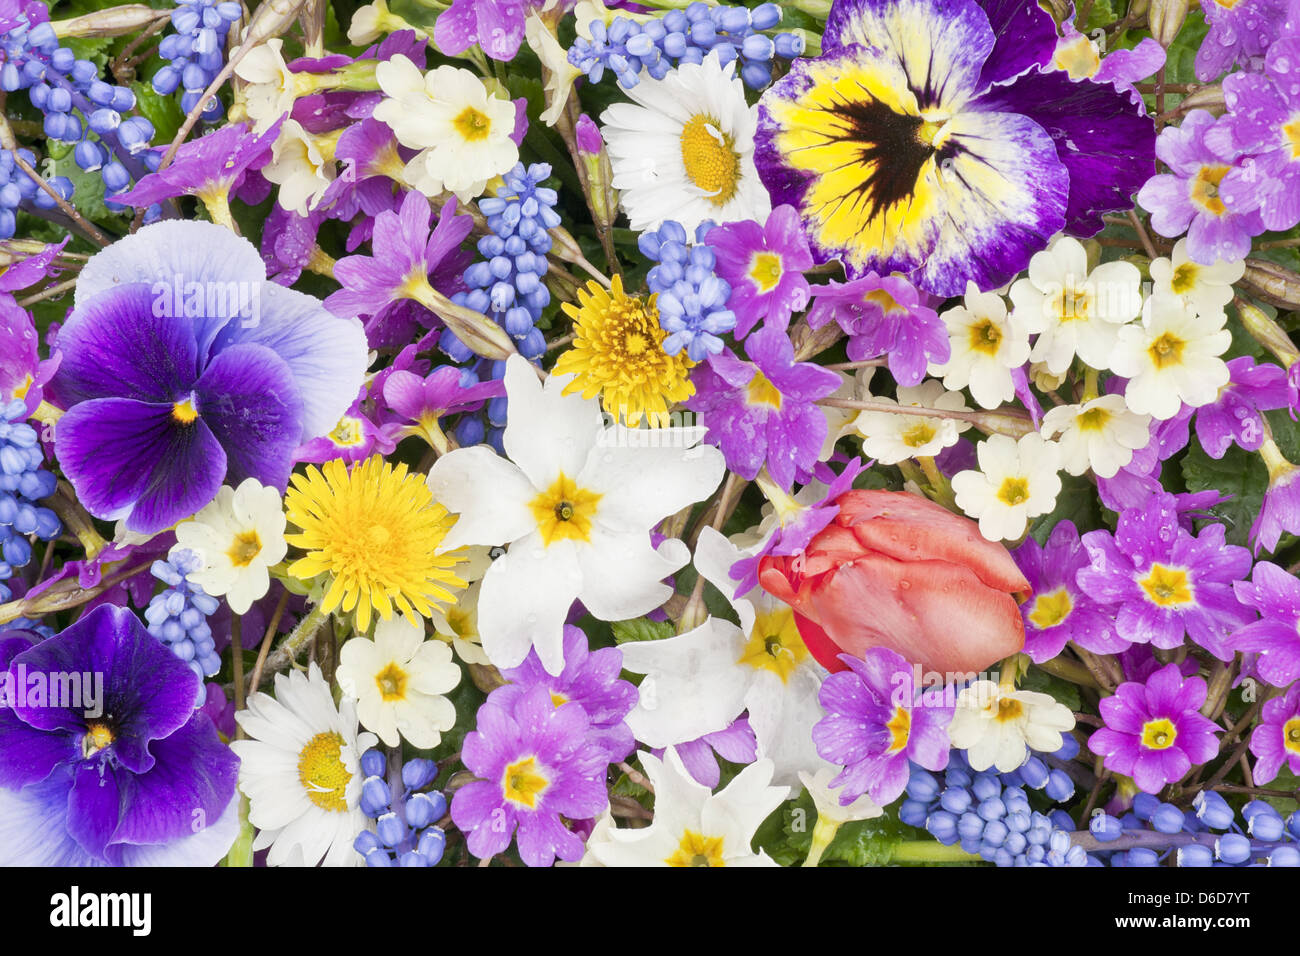 Springs flowers after the rain background stock photo 55610684 alamy springs flowers after the rain background mightylinksfo